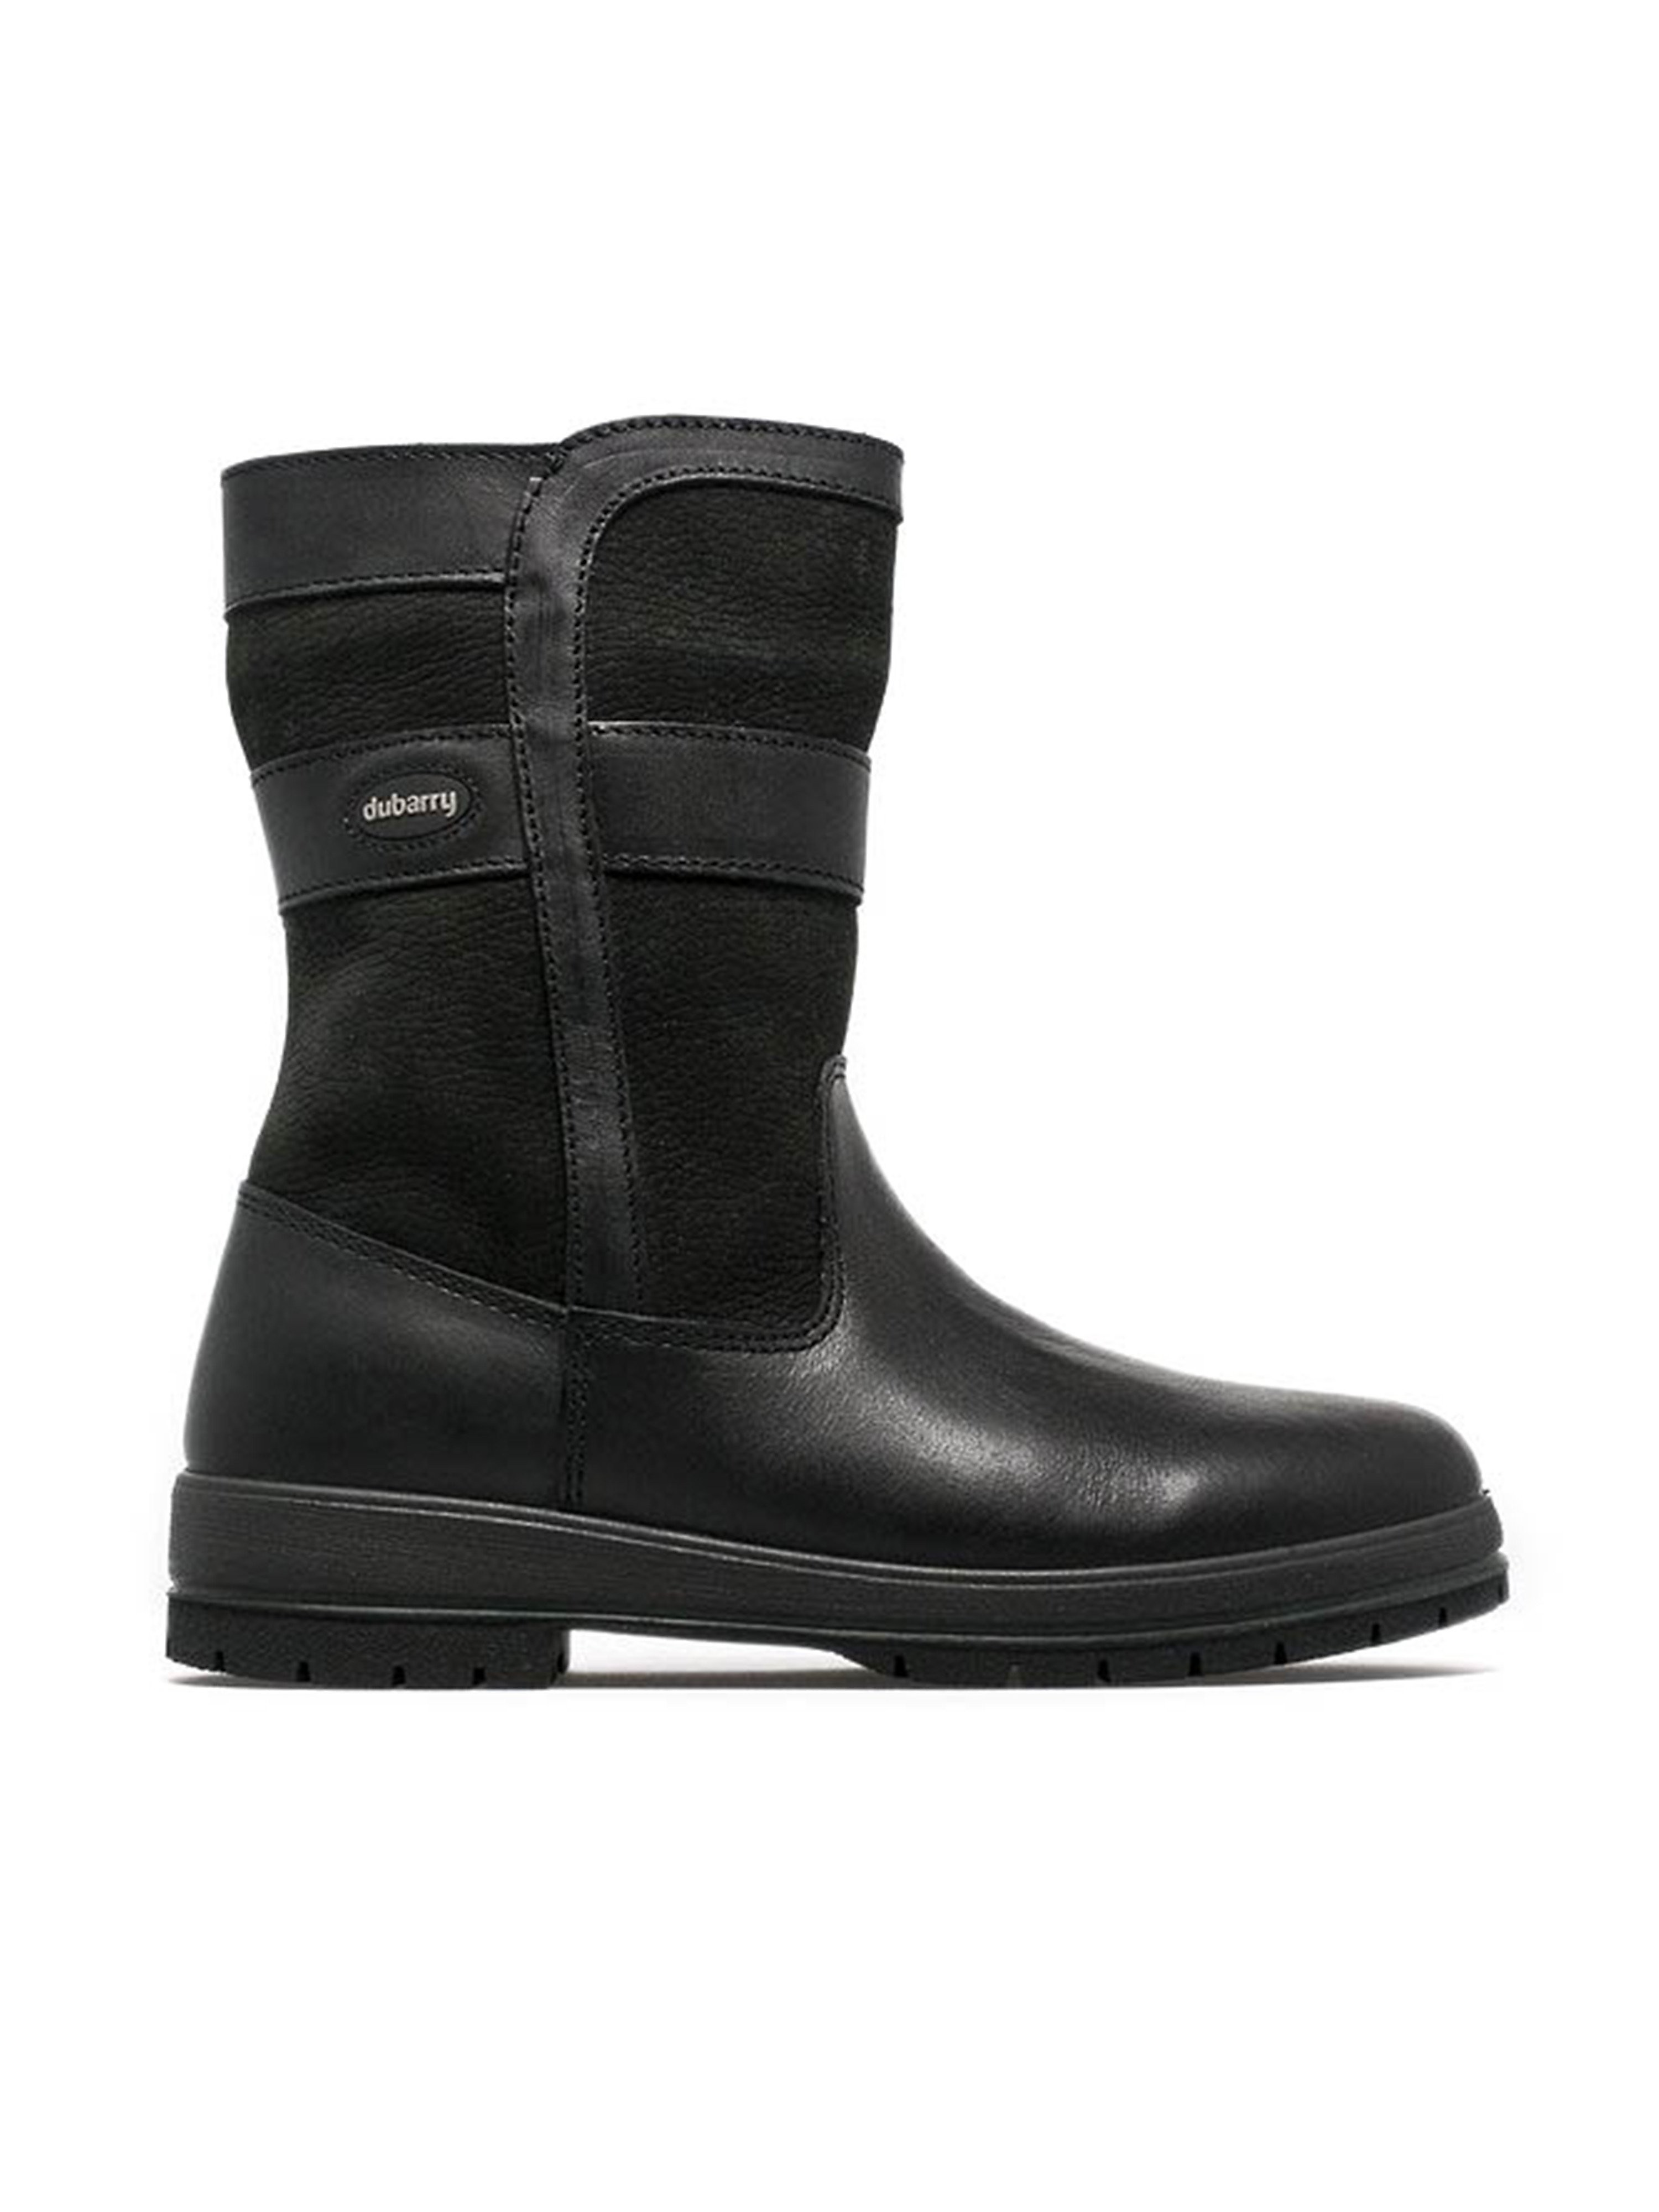 Dubarry Womens Roscommon - Black Leather